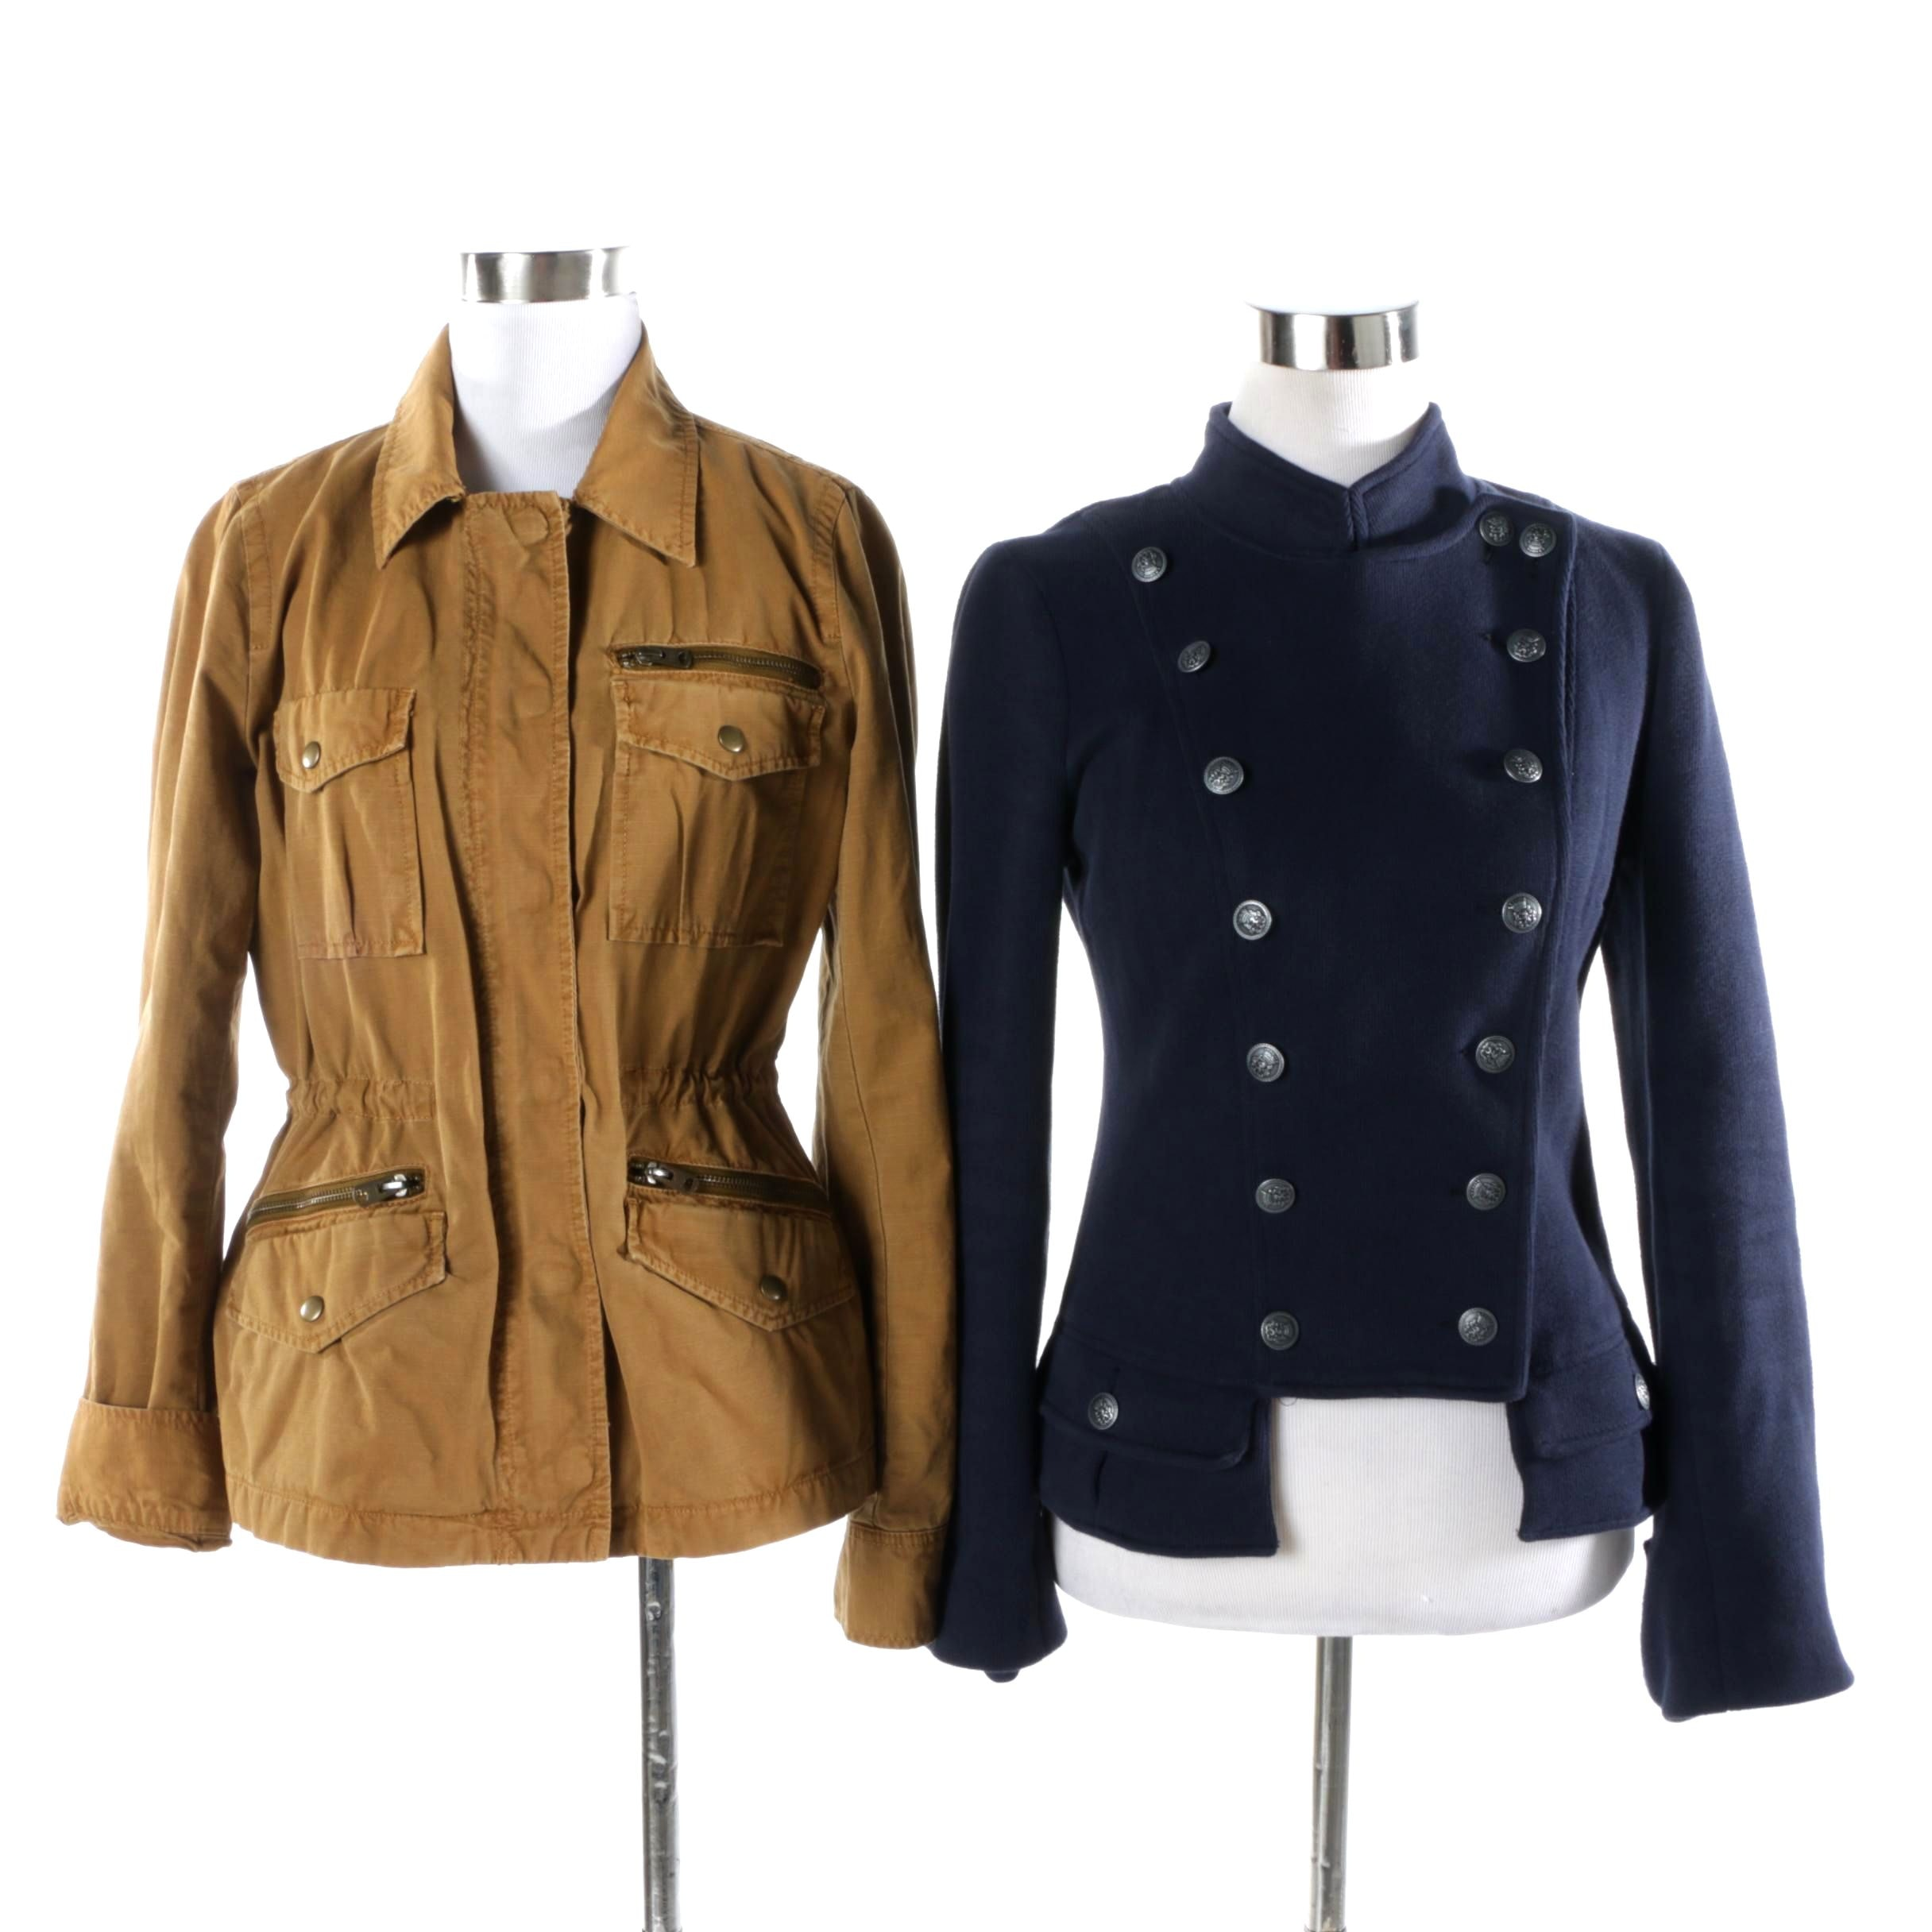 Free People Military Knit And J Crew Twill Chino Jackets Ebth